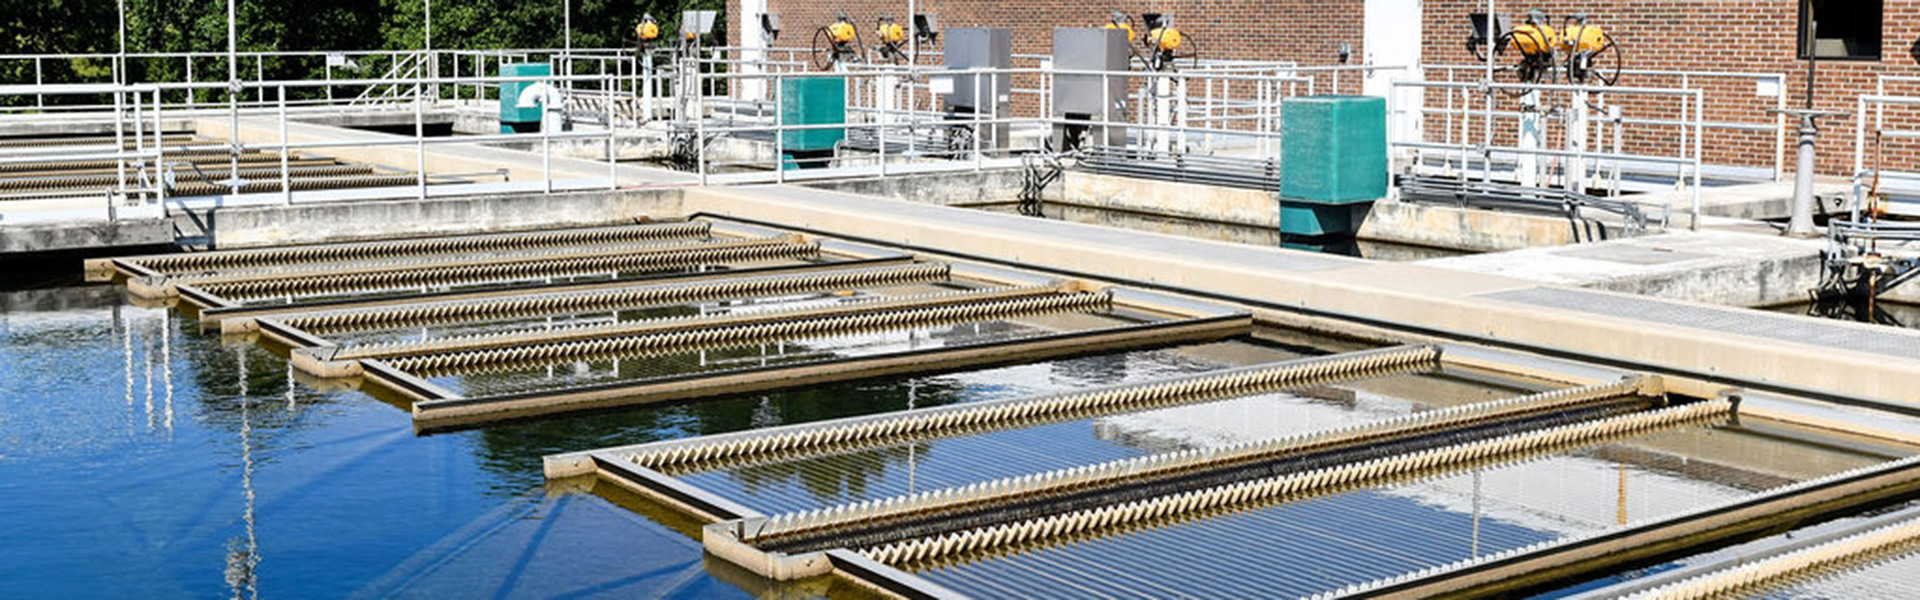 Greer CPW Water Filter Plant Receives 12th Consecutive Water Quality Award